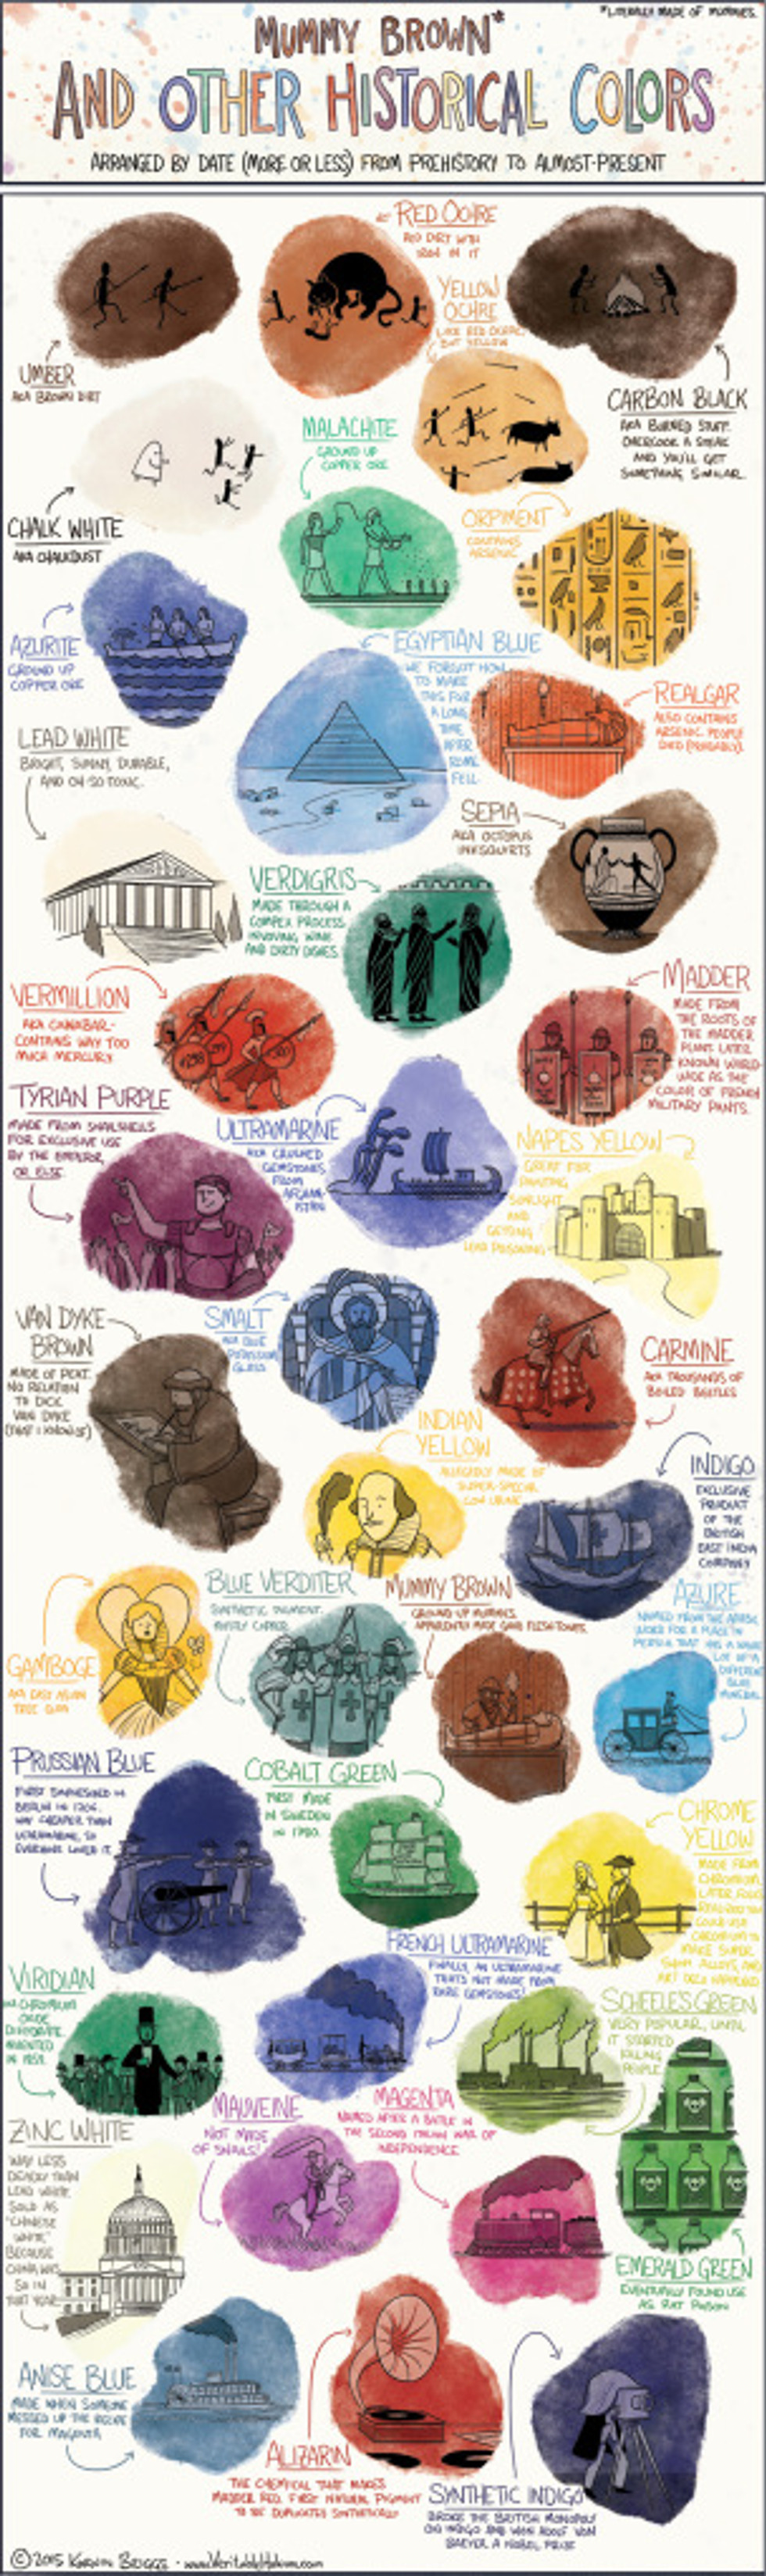 """Mummy Brown* and Other Historical Colors, Arranged by Date (More or Less) from Prehistory to Almost-Present, Veritable Hokum, by Korwin Briggs, http://www.veritablehokum.com/ [Click image for larger view.] Used with permission as stated in terms under """"About"""", © 2015."""